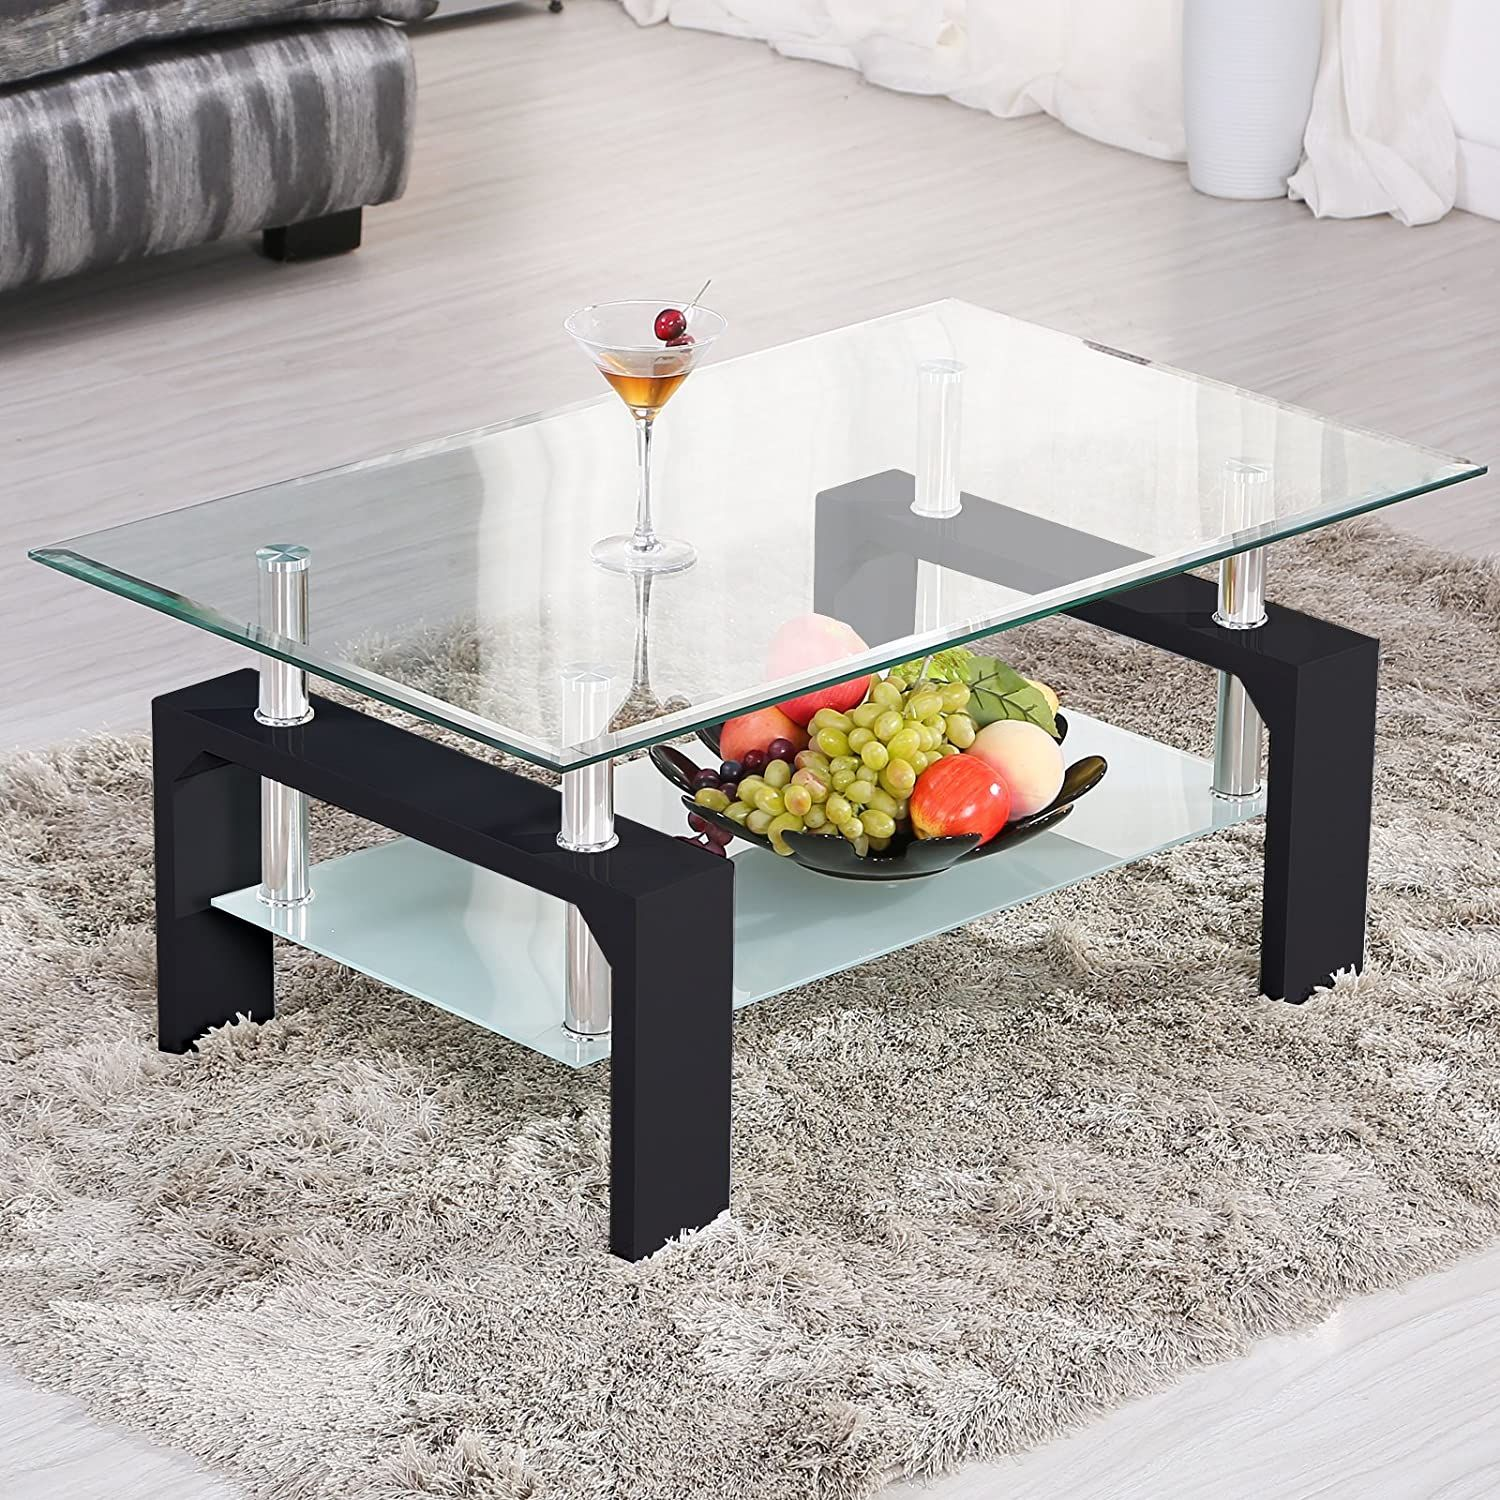 Mecor Rectangle Glass Coffee Table Modern Side Coffee Table With Lower Shelf Black Wooden Legs Black Wood Living Room Furniture Side Coffee Table Coffee Table [ 1500 x 1500 Pixel ]